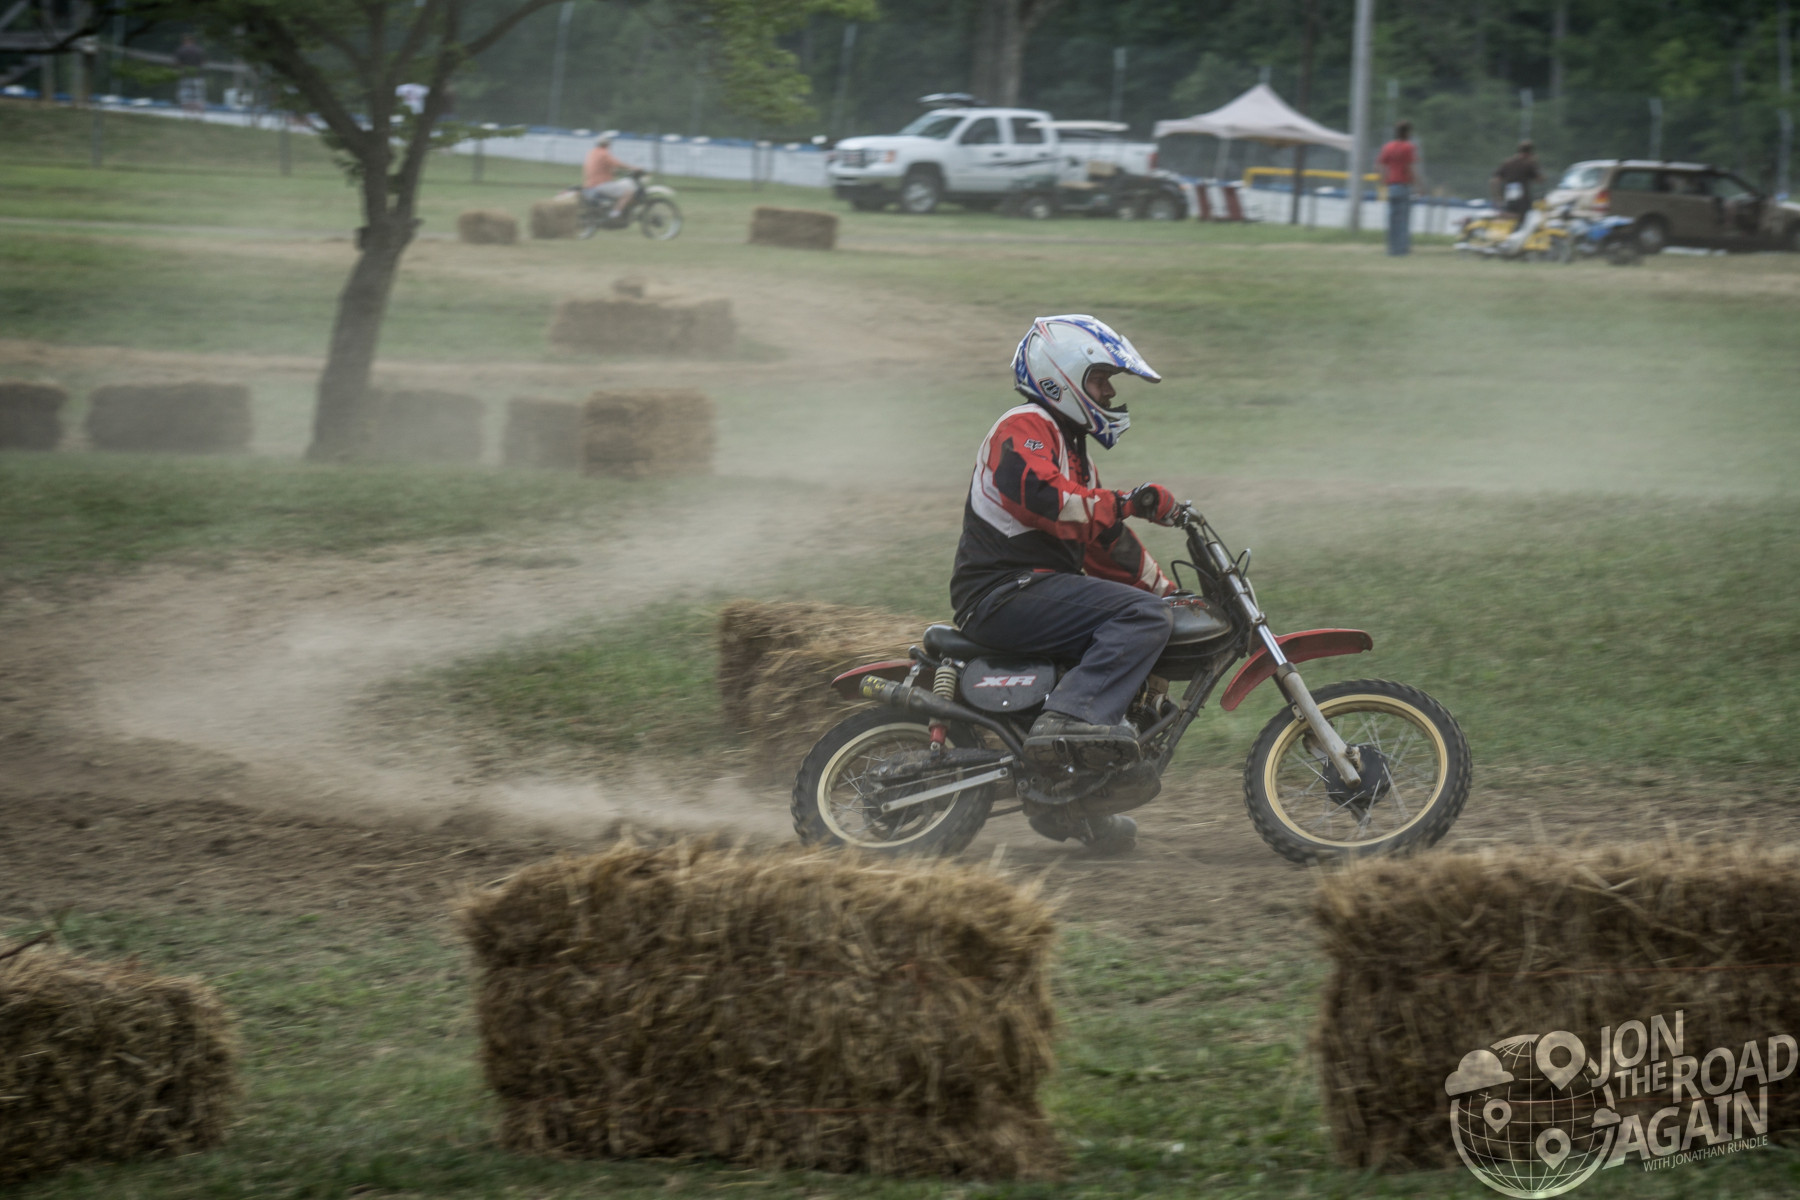 MX Motorcycle racing at mid-ohio at AMA Vintage Motorcycle Days